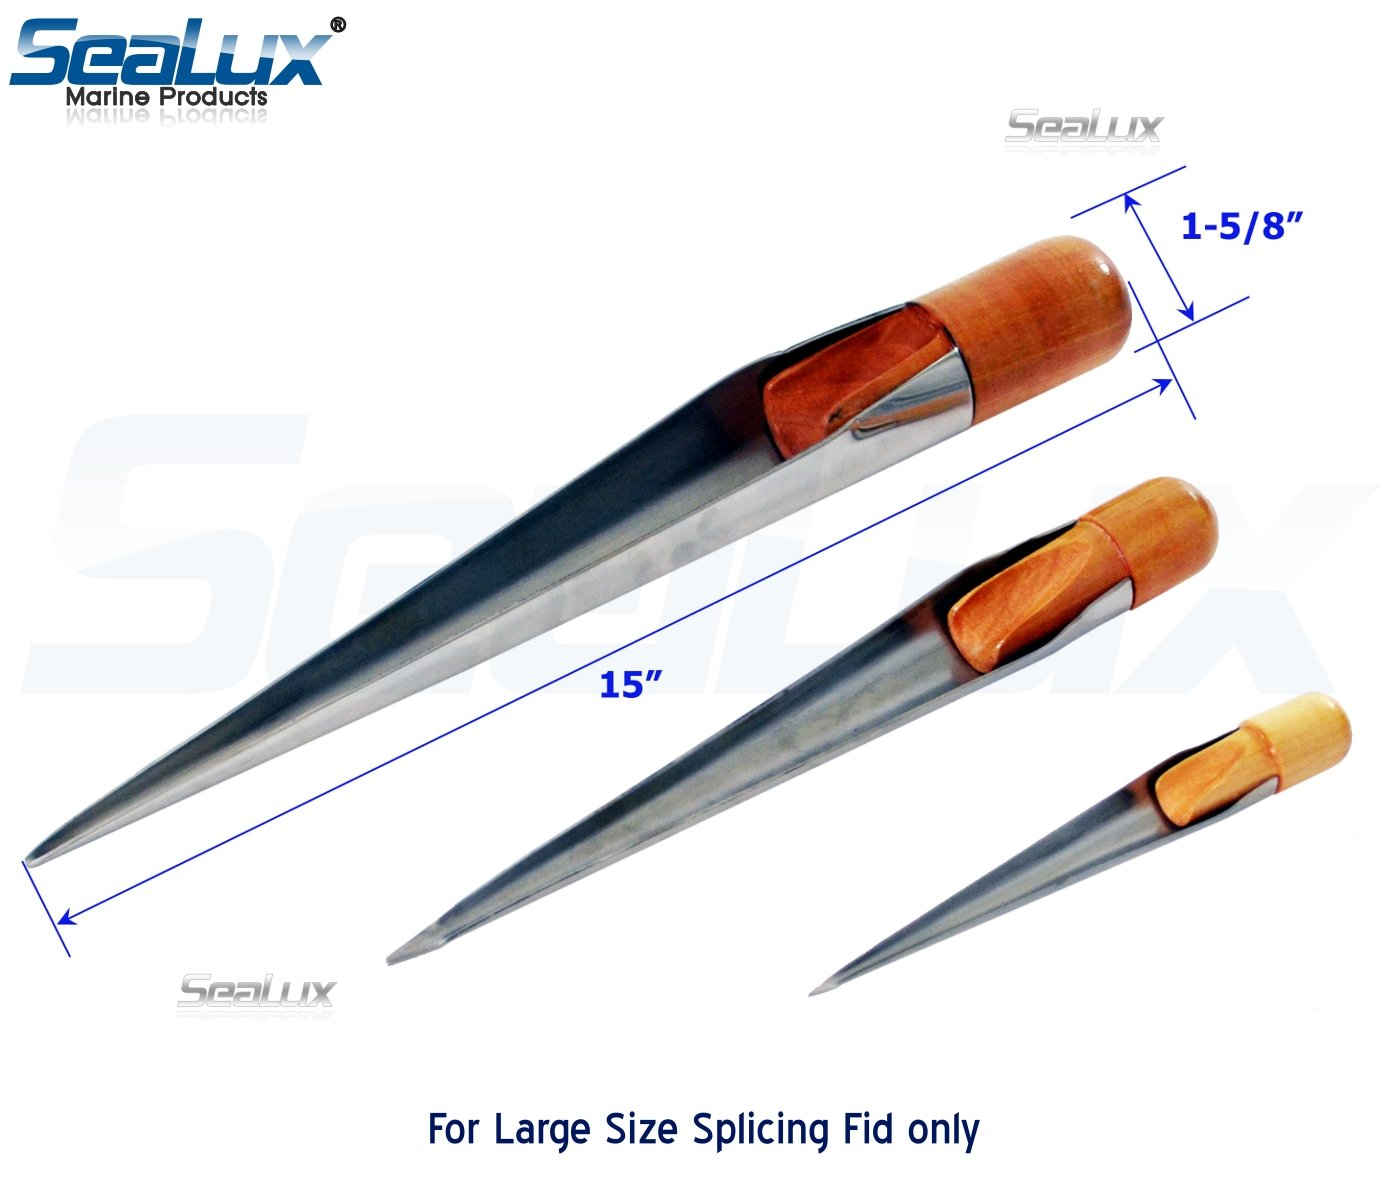 SeaLux Stainless Steel Rope Splicing Spike Fids with Wood Handle-for Dia. 1'' and up Rope (Large Only) by SeaLux